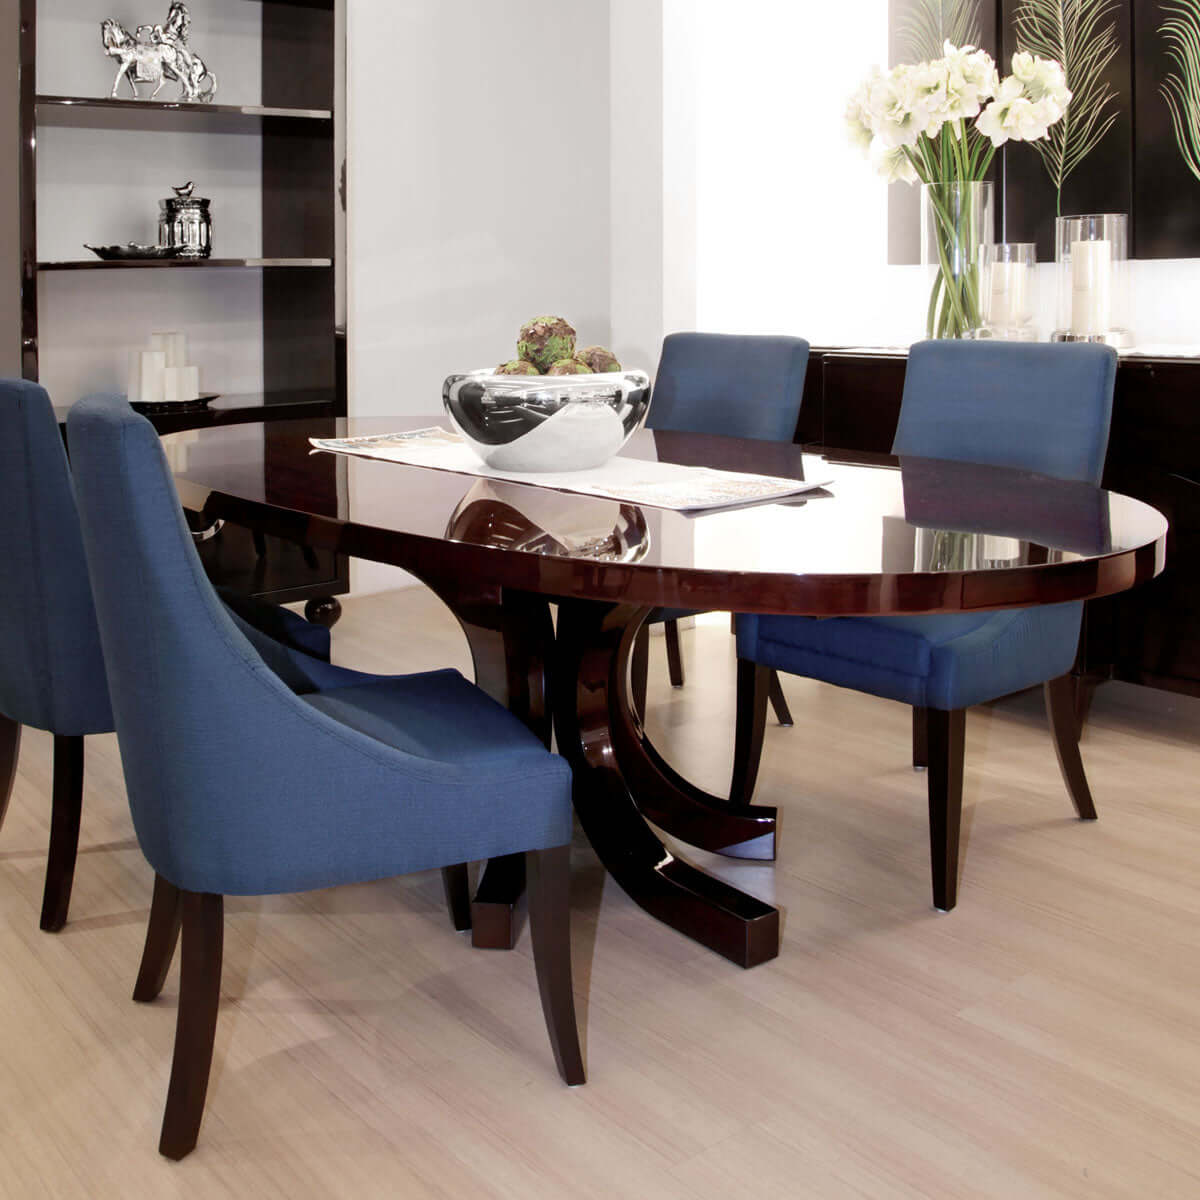 furniture online Indonesia  - glossy oval dining table